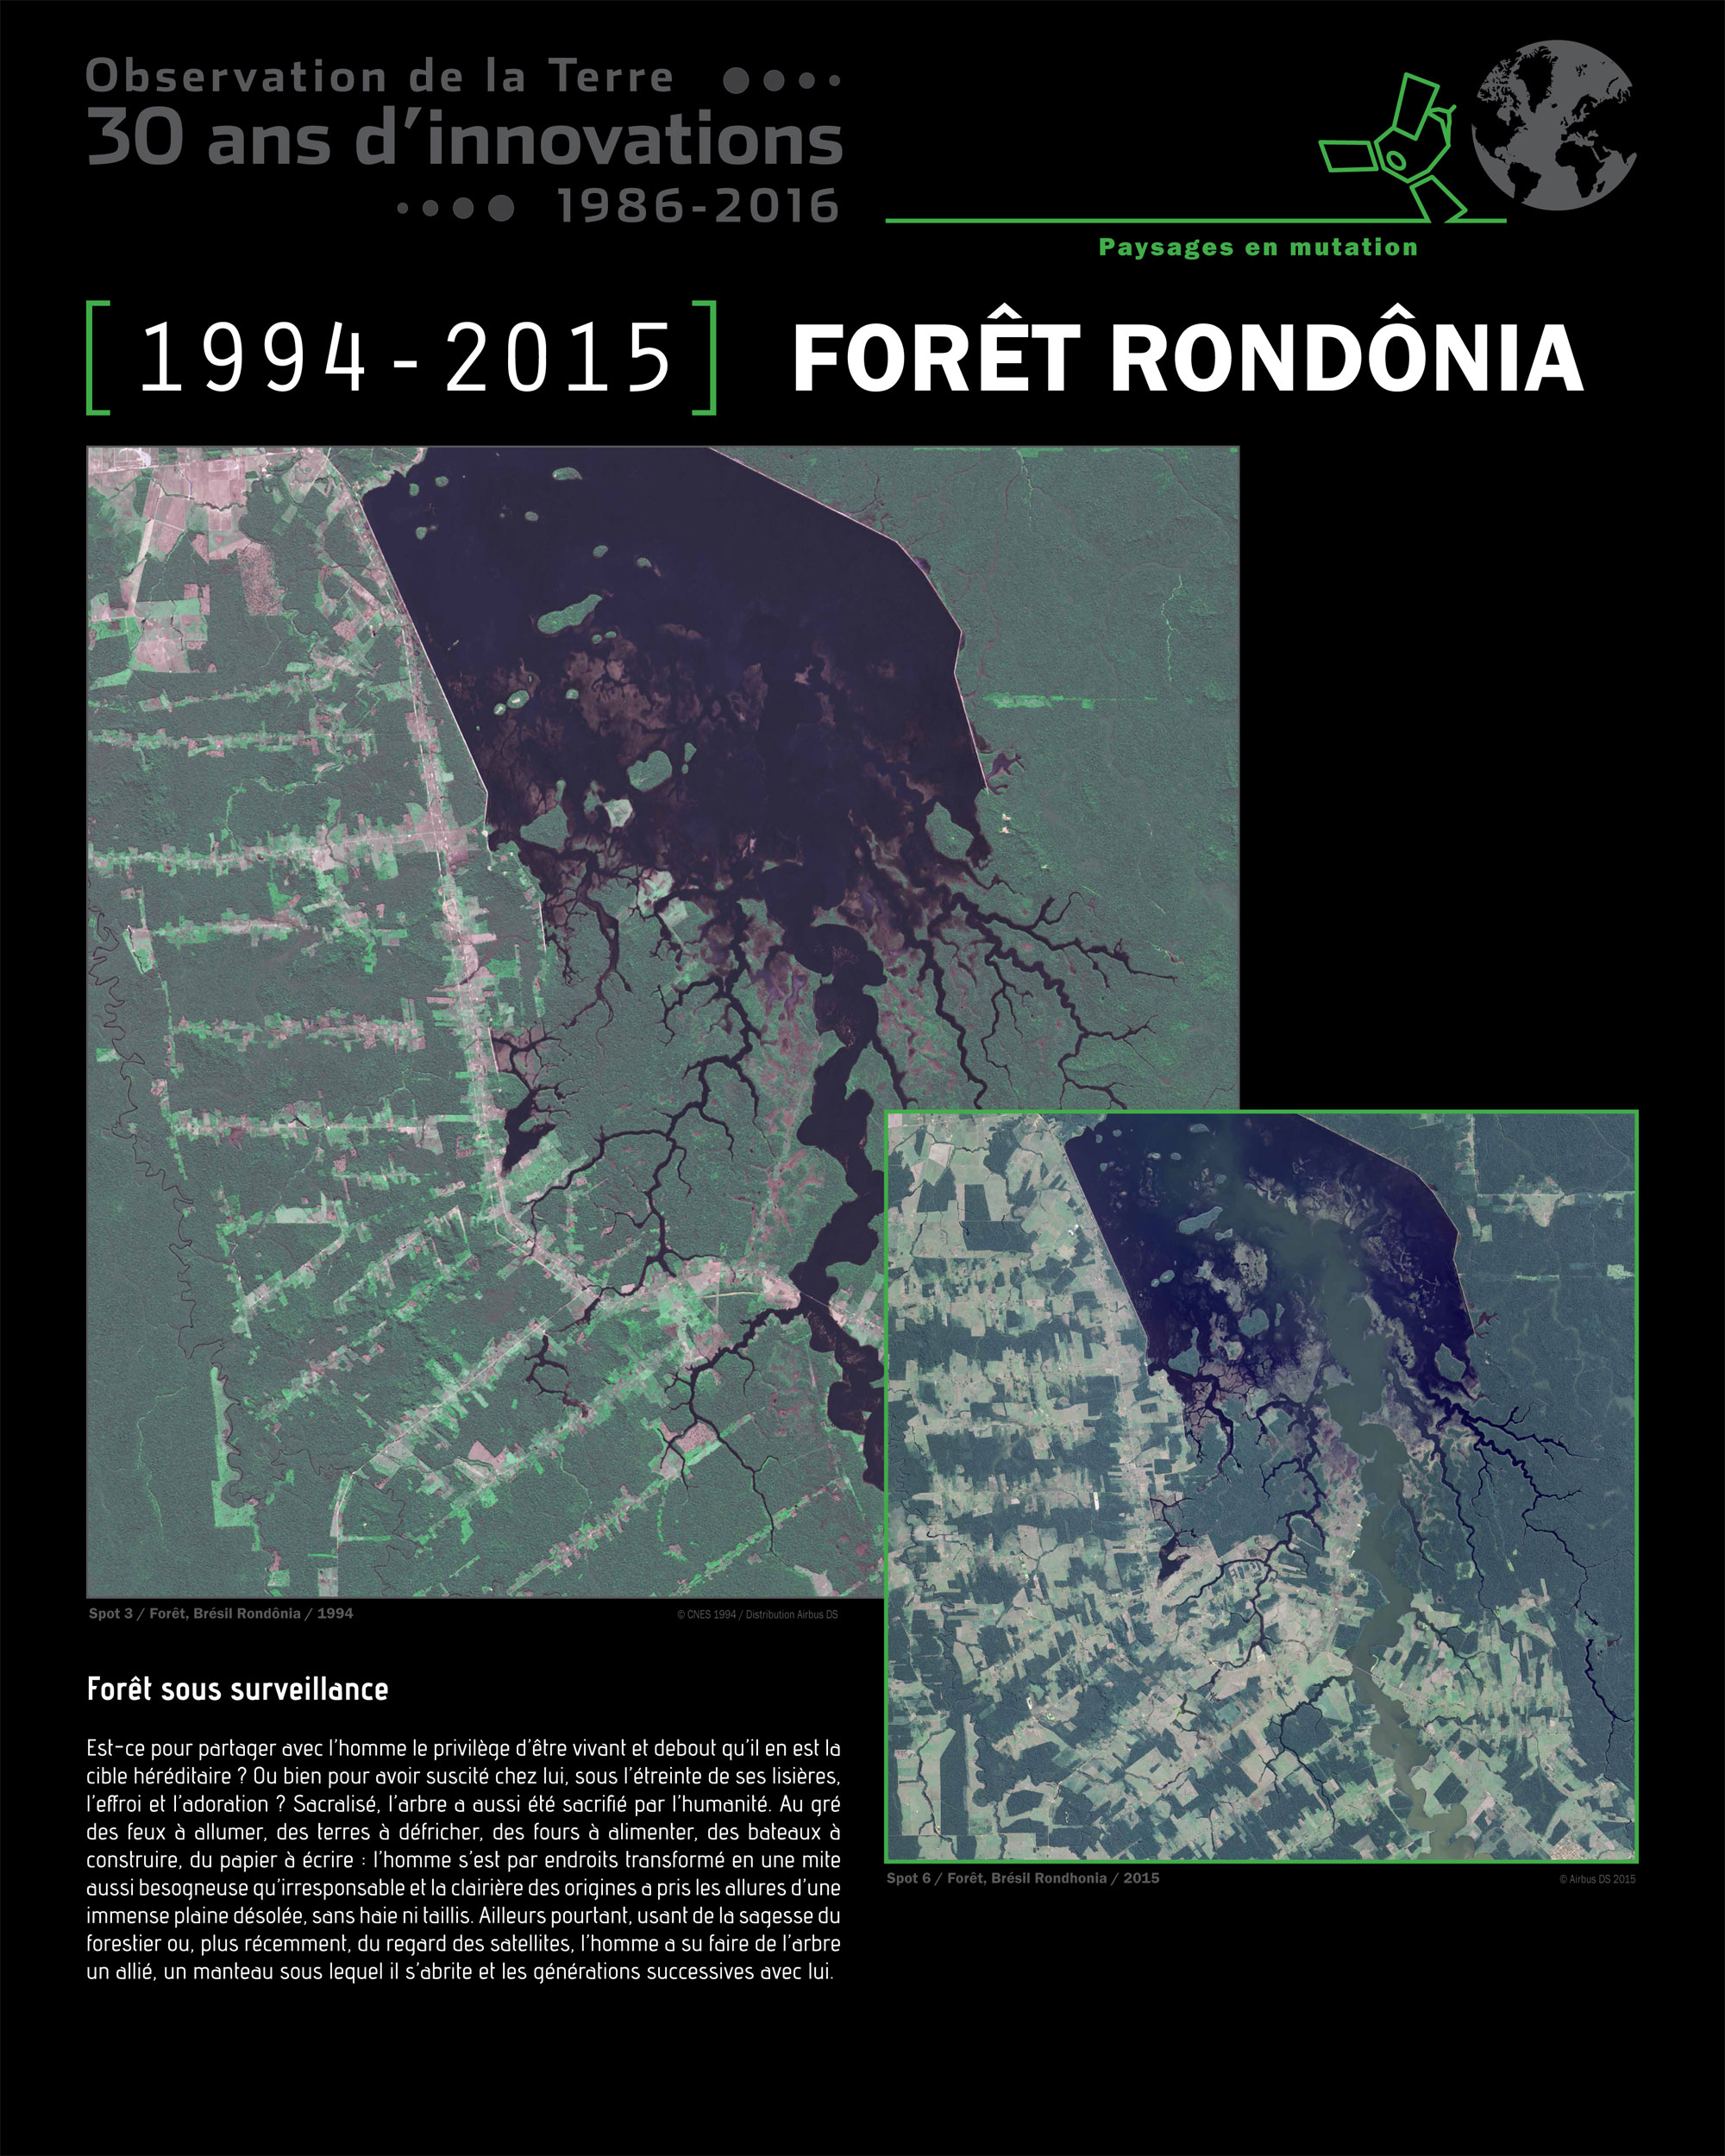 is_spot-30ans-foret-rondonia-13.jpg